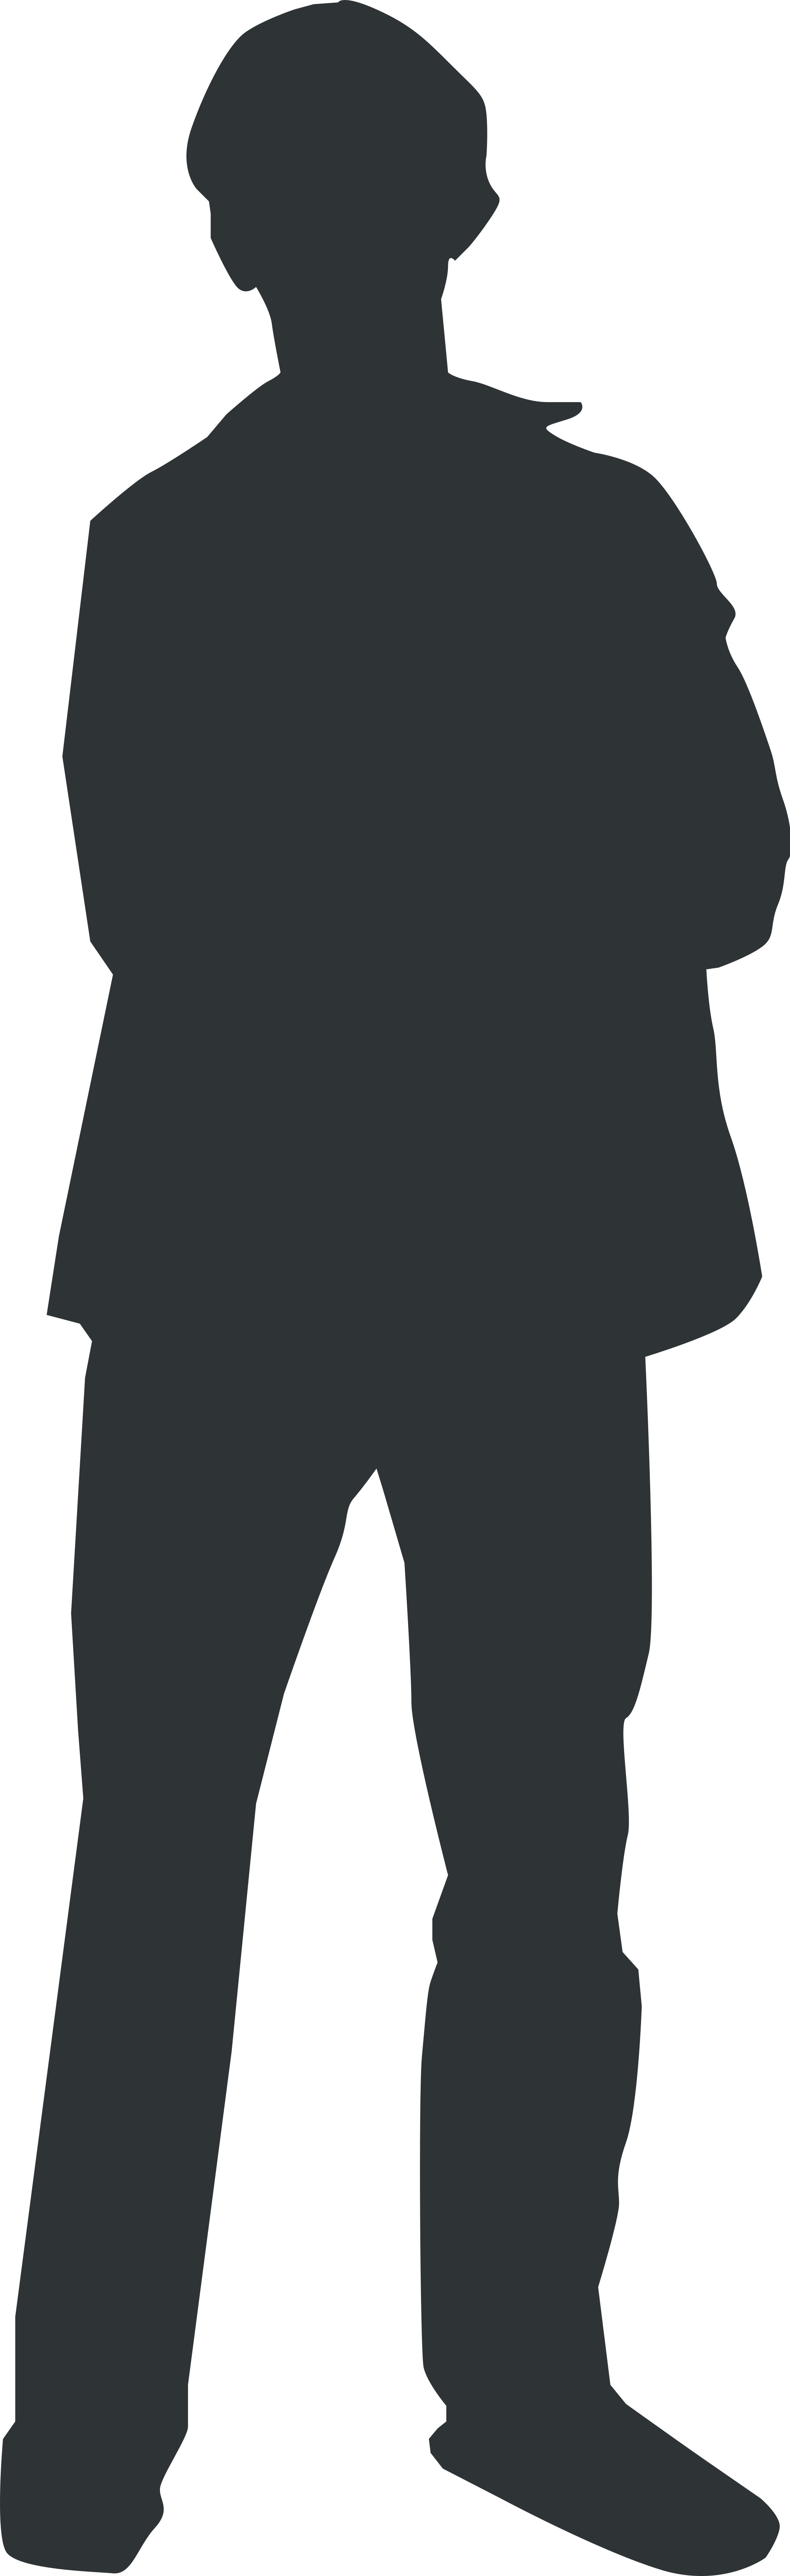 Person svg shadow. File outline wikimedia commons